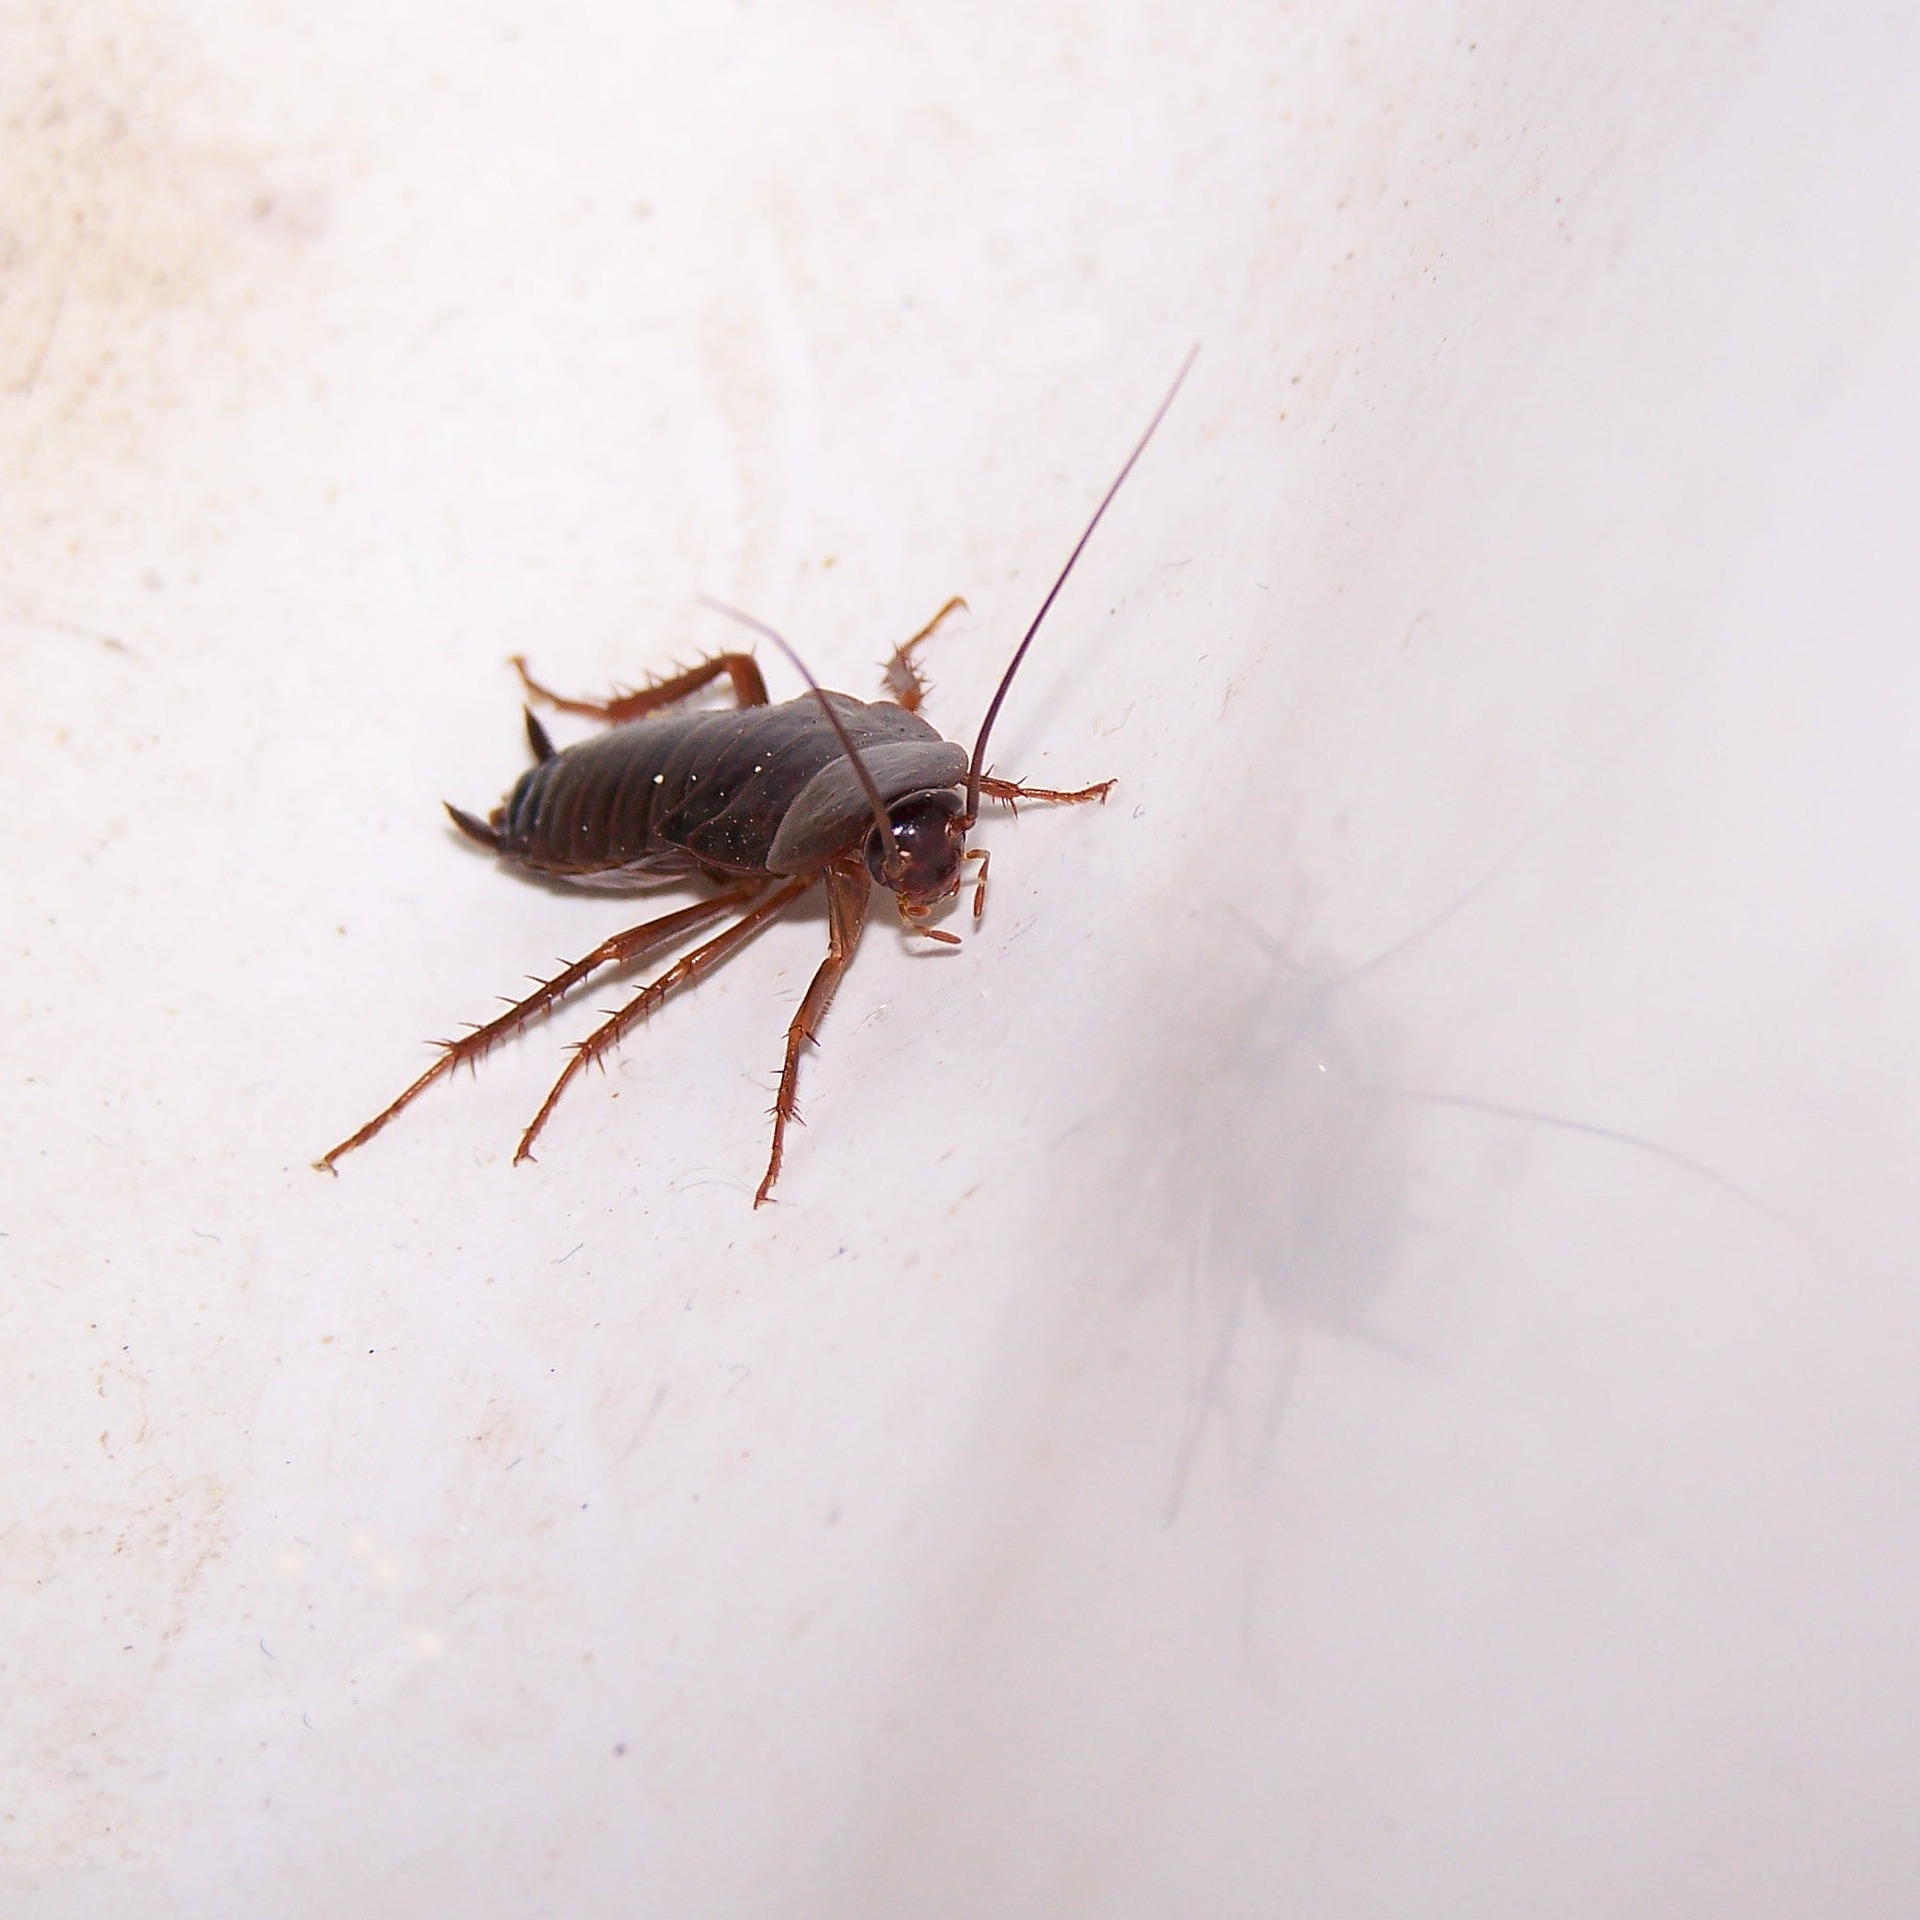 Roaches, cockroaches, general pest control, roach removal New Orleans, Kenner roach removal, Metairie roach removal